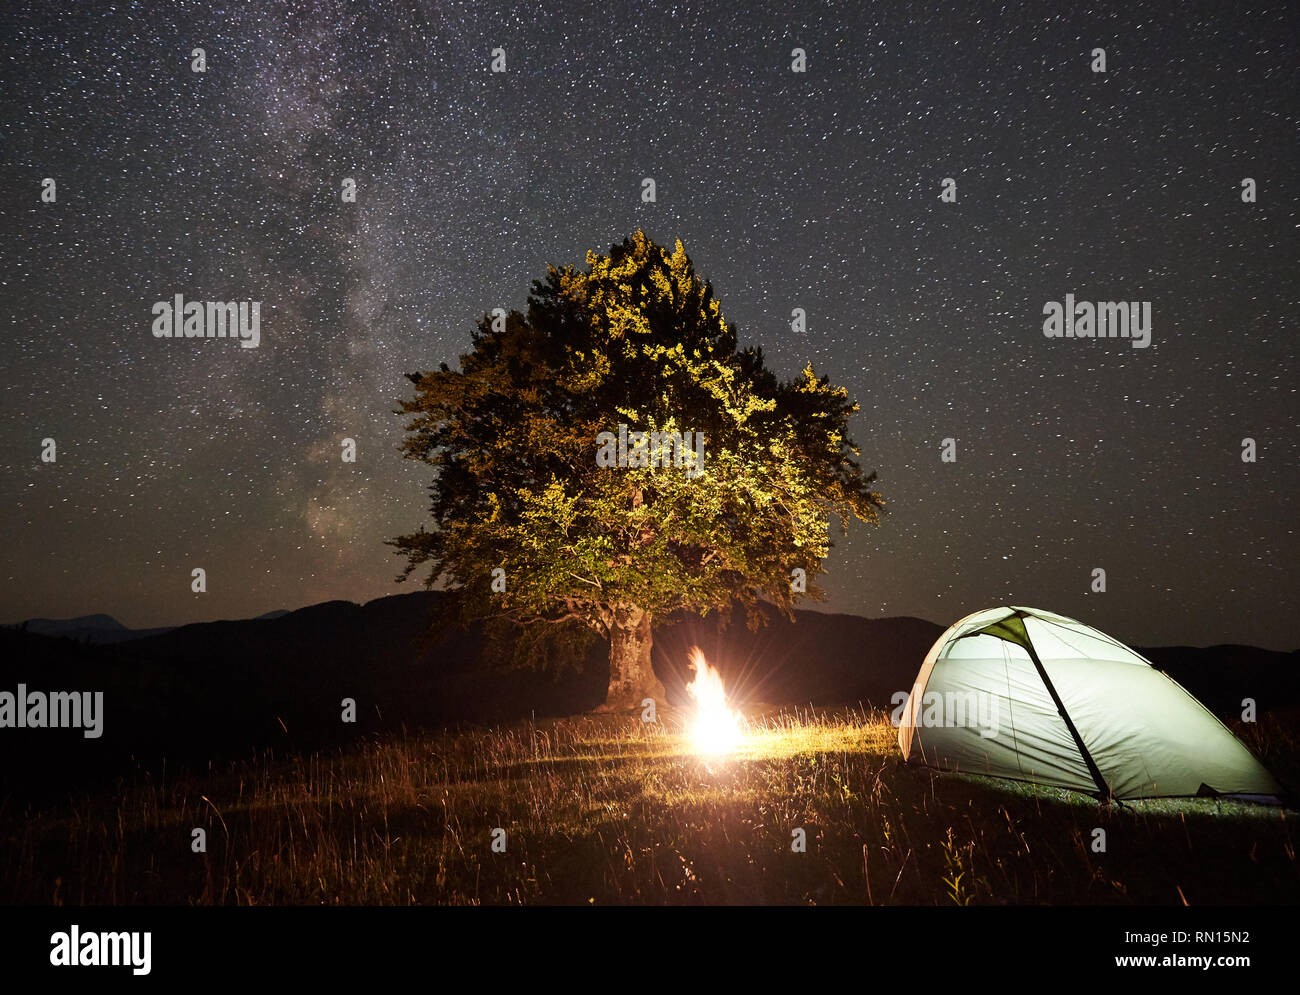 Dark Sky With Glowing Tent Stock Photos & Dark Sky With Glowing Tent